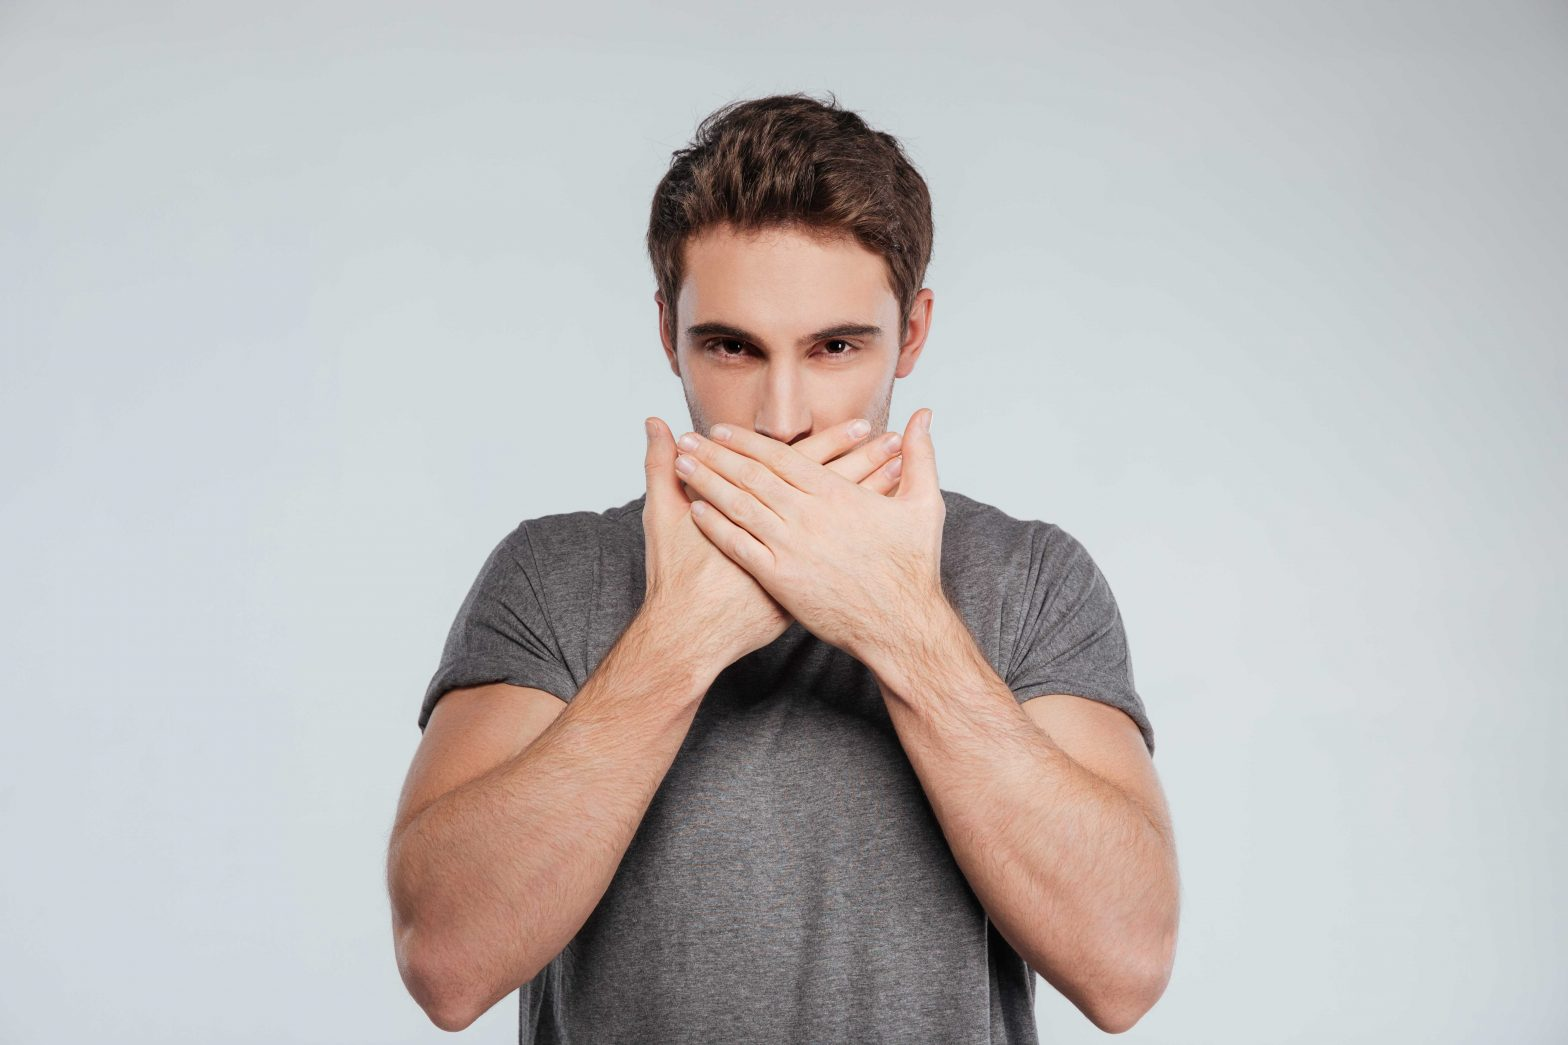 man covers mouth with both hands